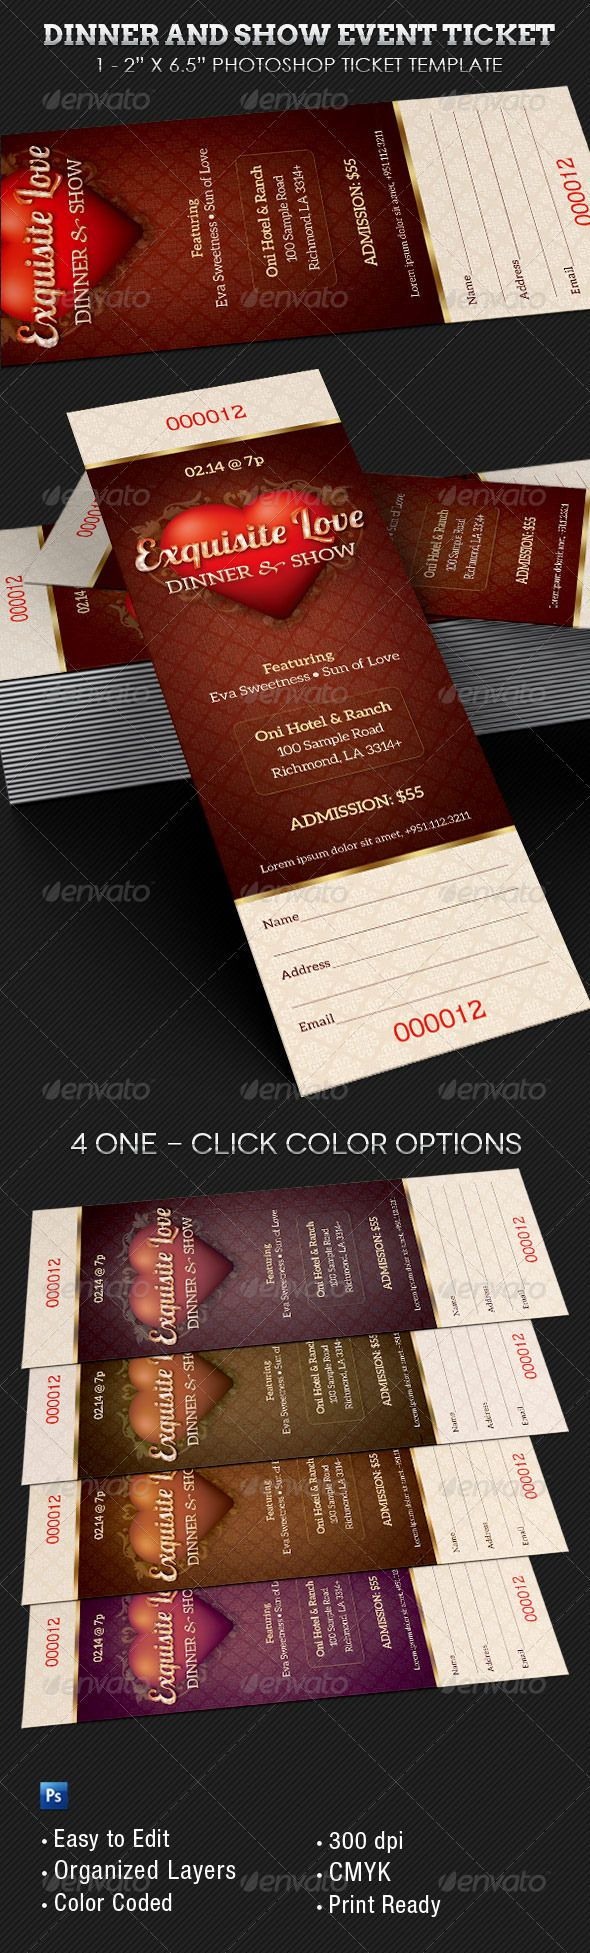 Dinner and Dance Event Ticket Template – Dinner Tickets Template